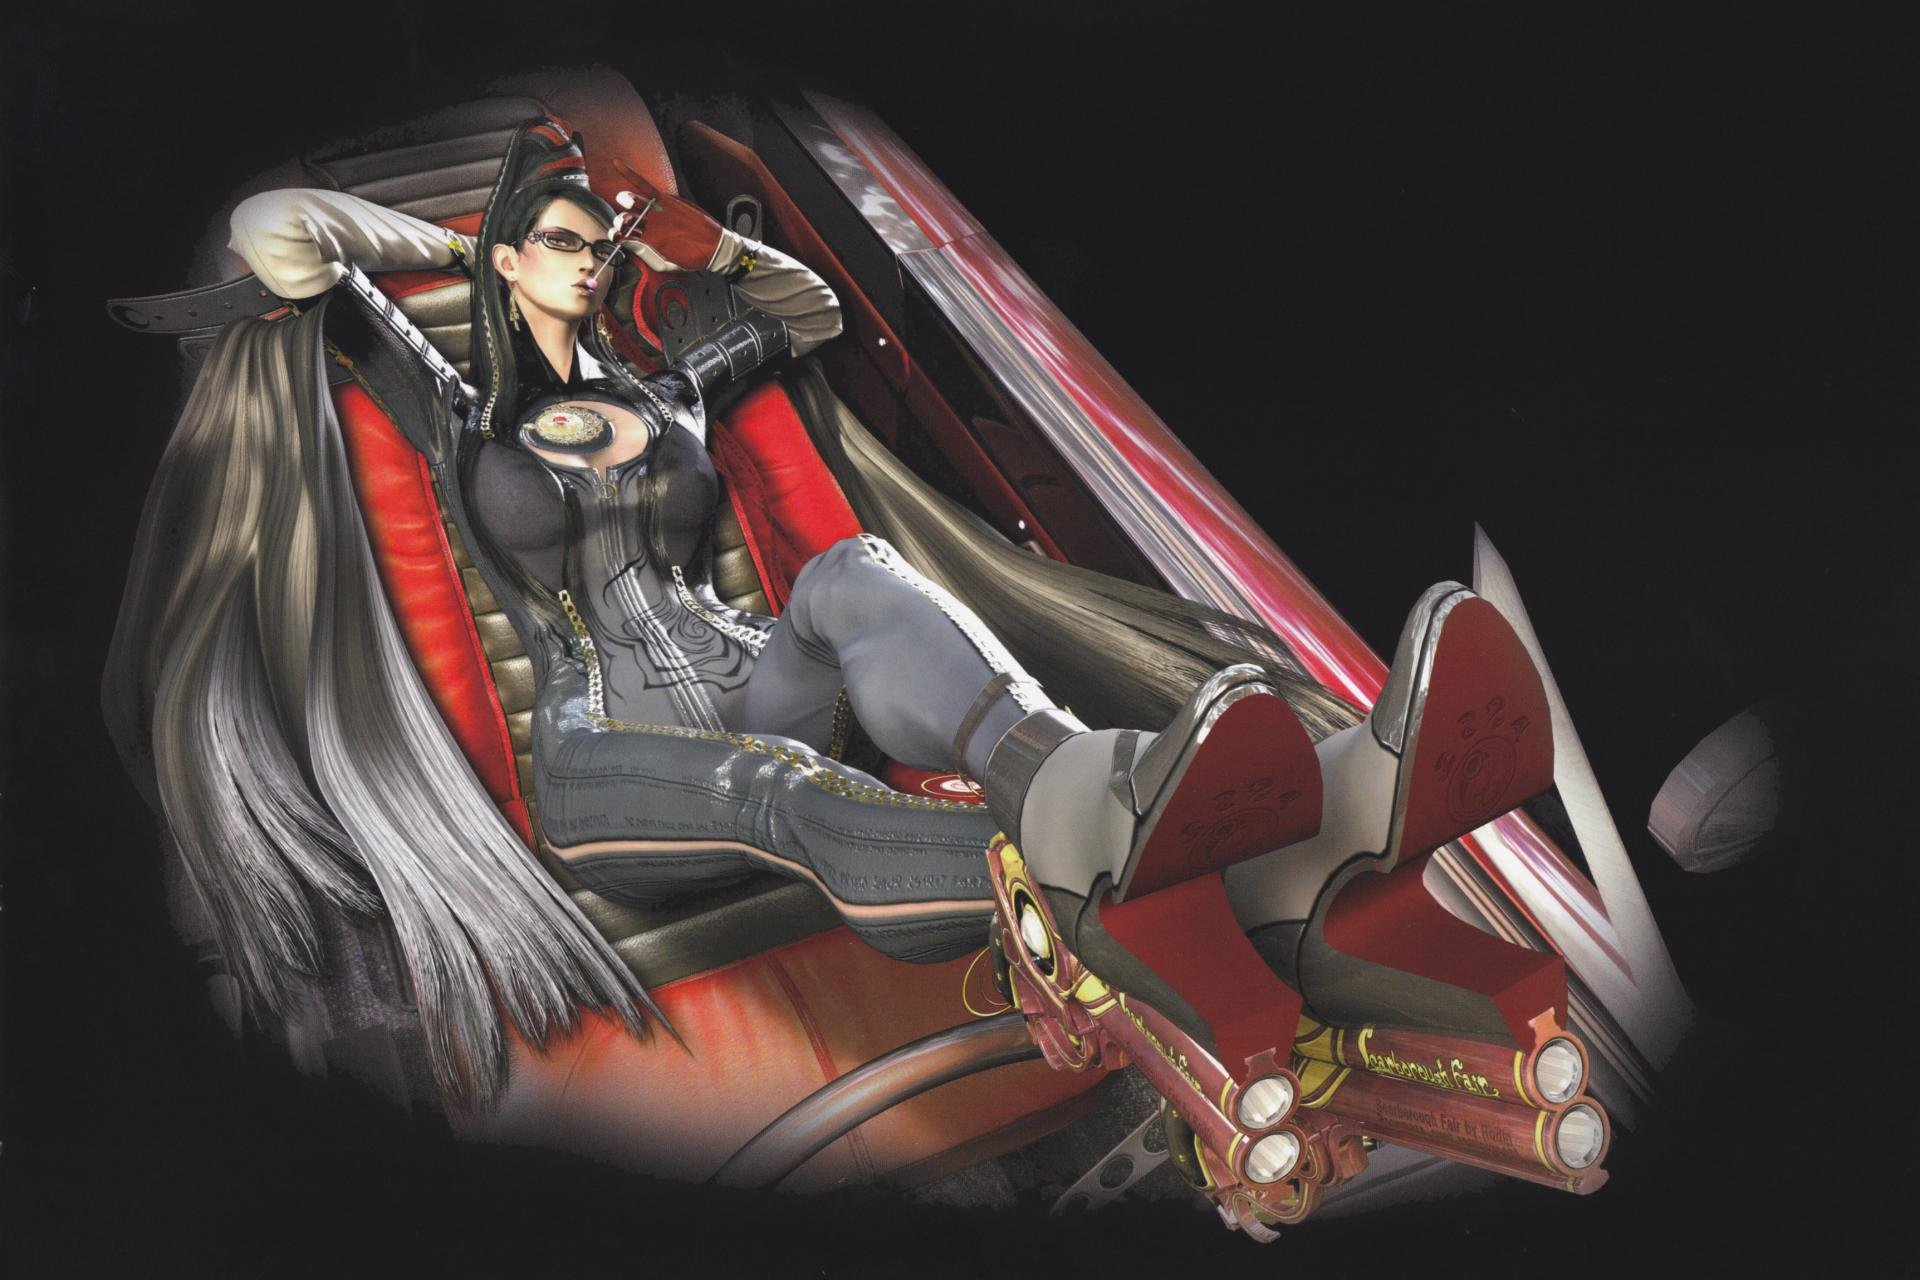 Download hd 1920x1280 Bayonetta desktop background ID:100247 for free